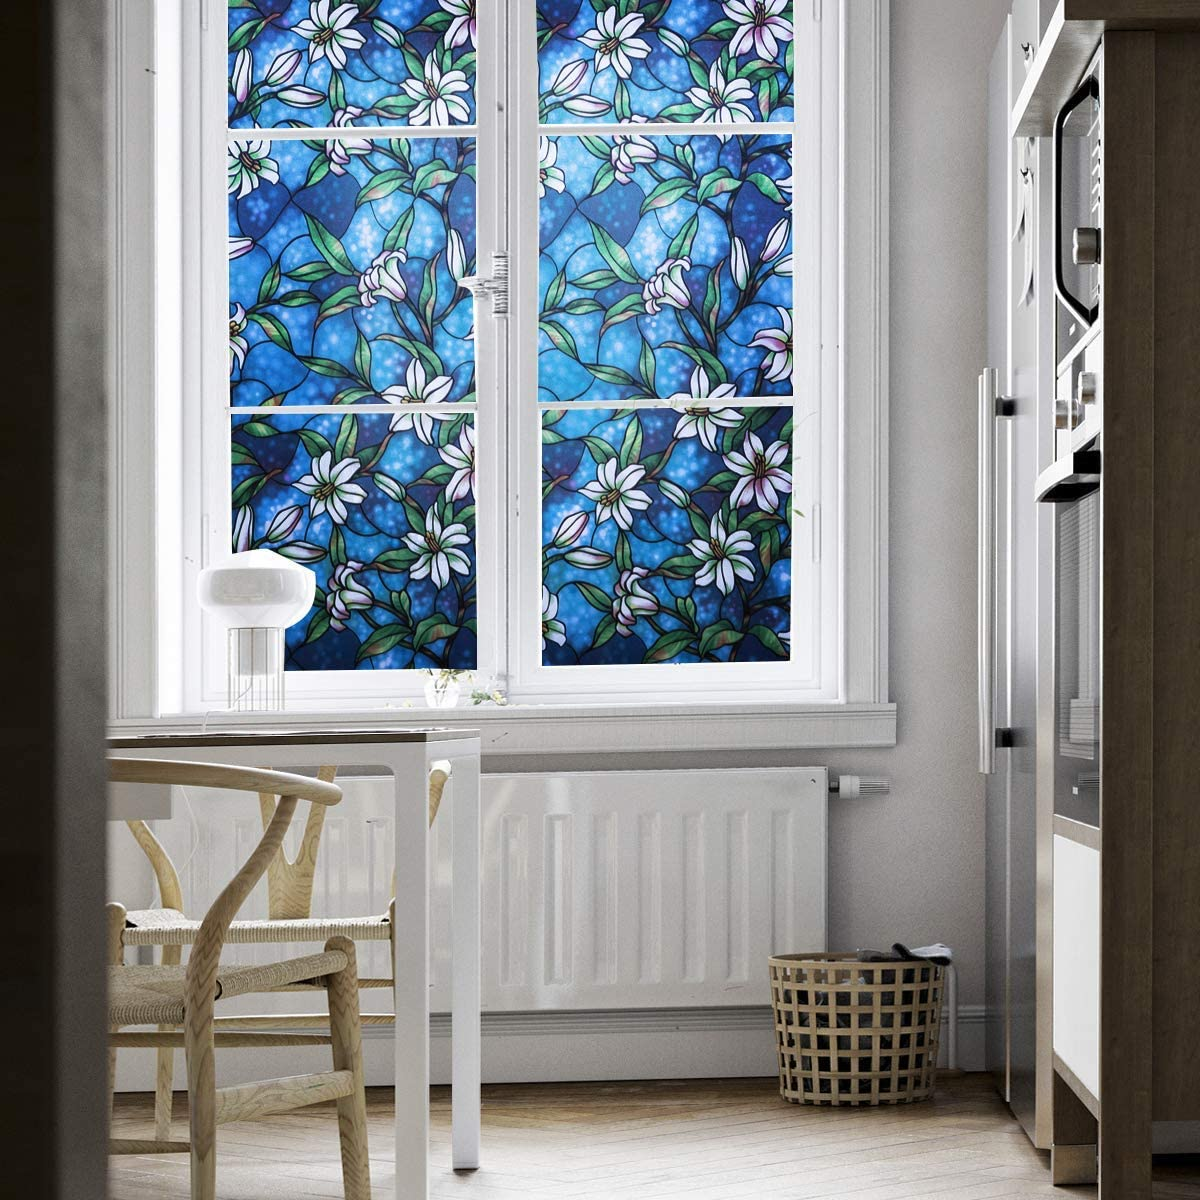 Coavas Window Privacy Film 118 x 17.7 Inches Decorative Non-Adhesive Stained Glass Window Covering Clings Privacy for Home Bathroom Kitchen Office